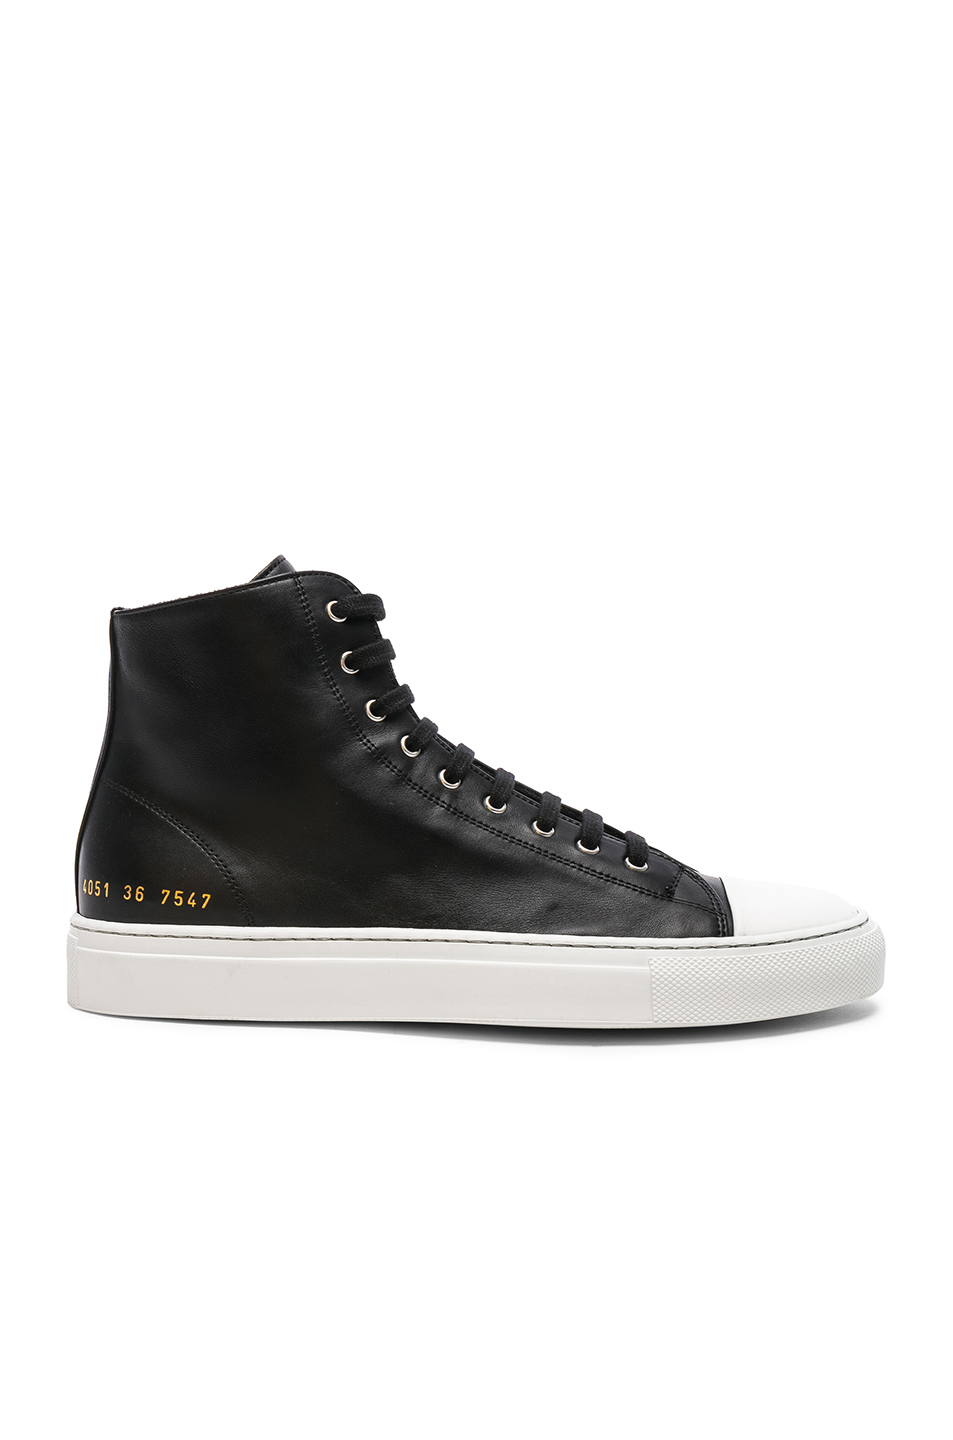 df5b39f1fe9 Buy Original Common Projects Leather High Tournament Cap Toe ...